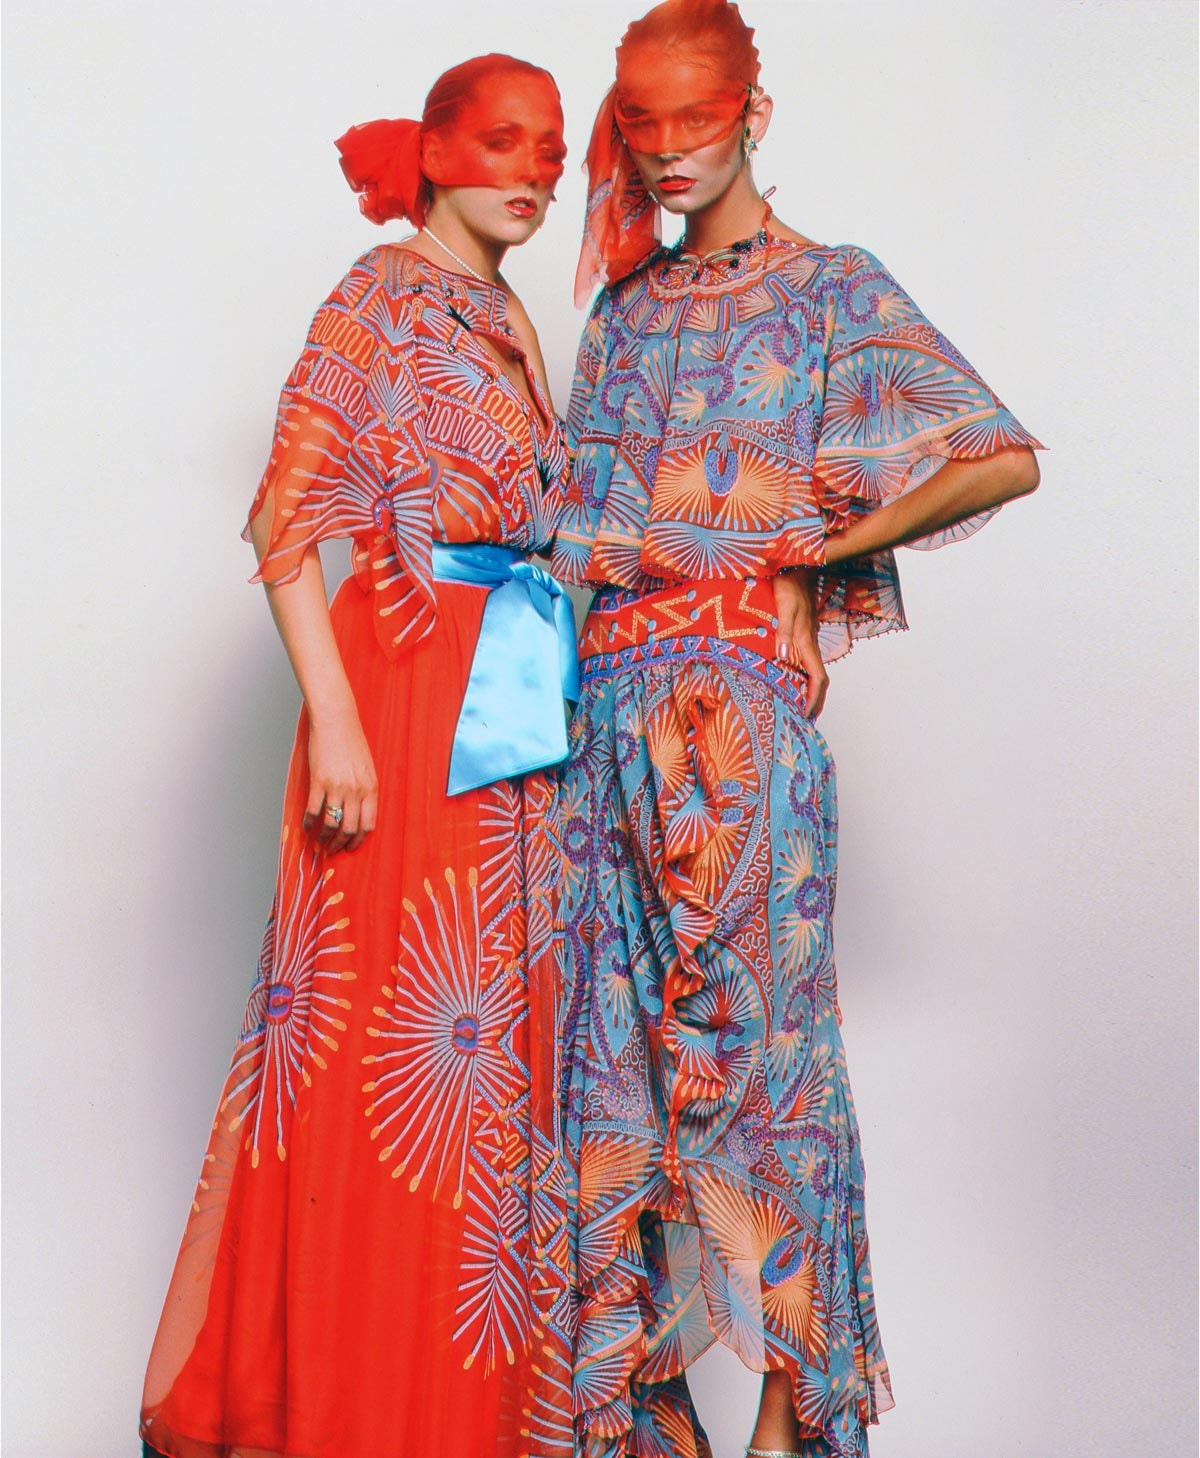 Fashion and Textile Museum to highlight Zandra Rhodes' career